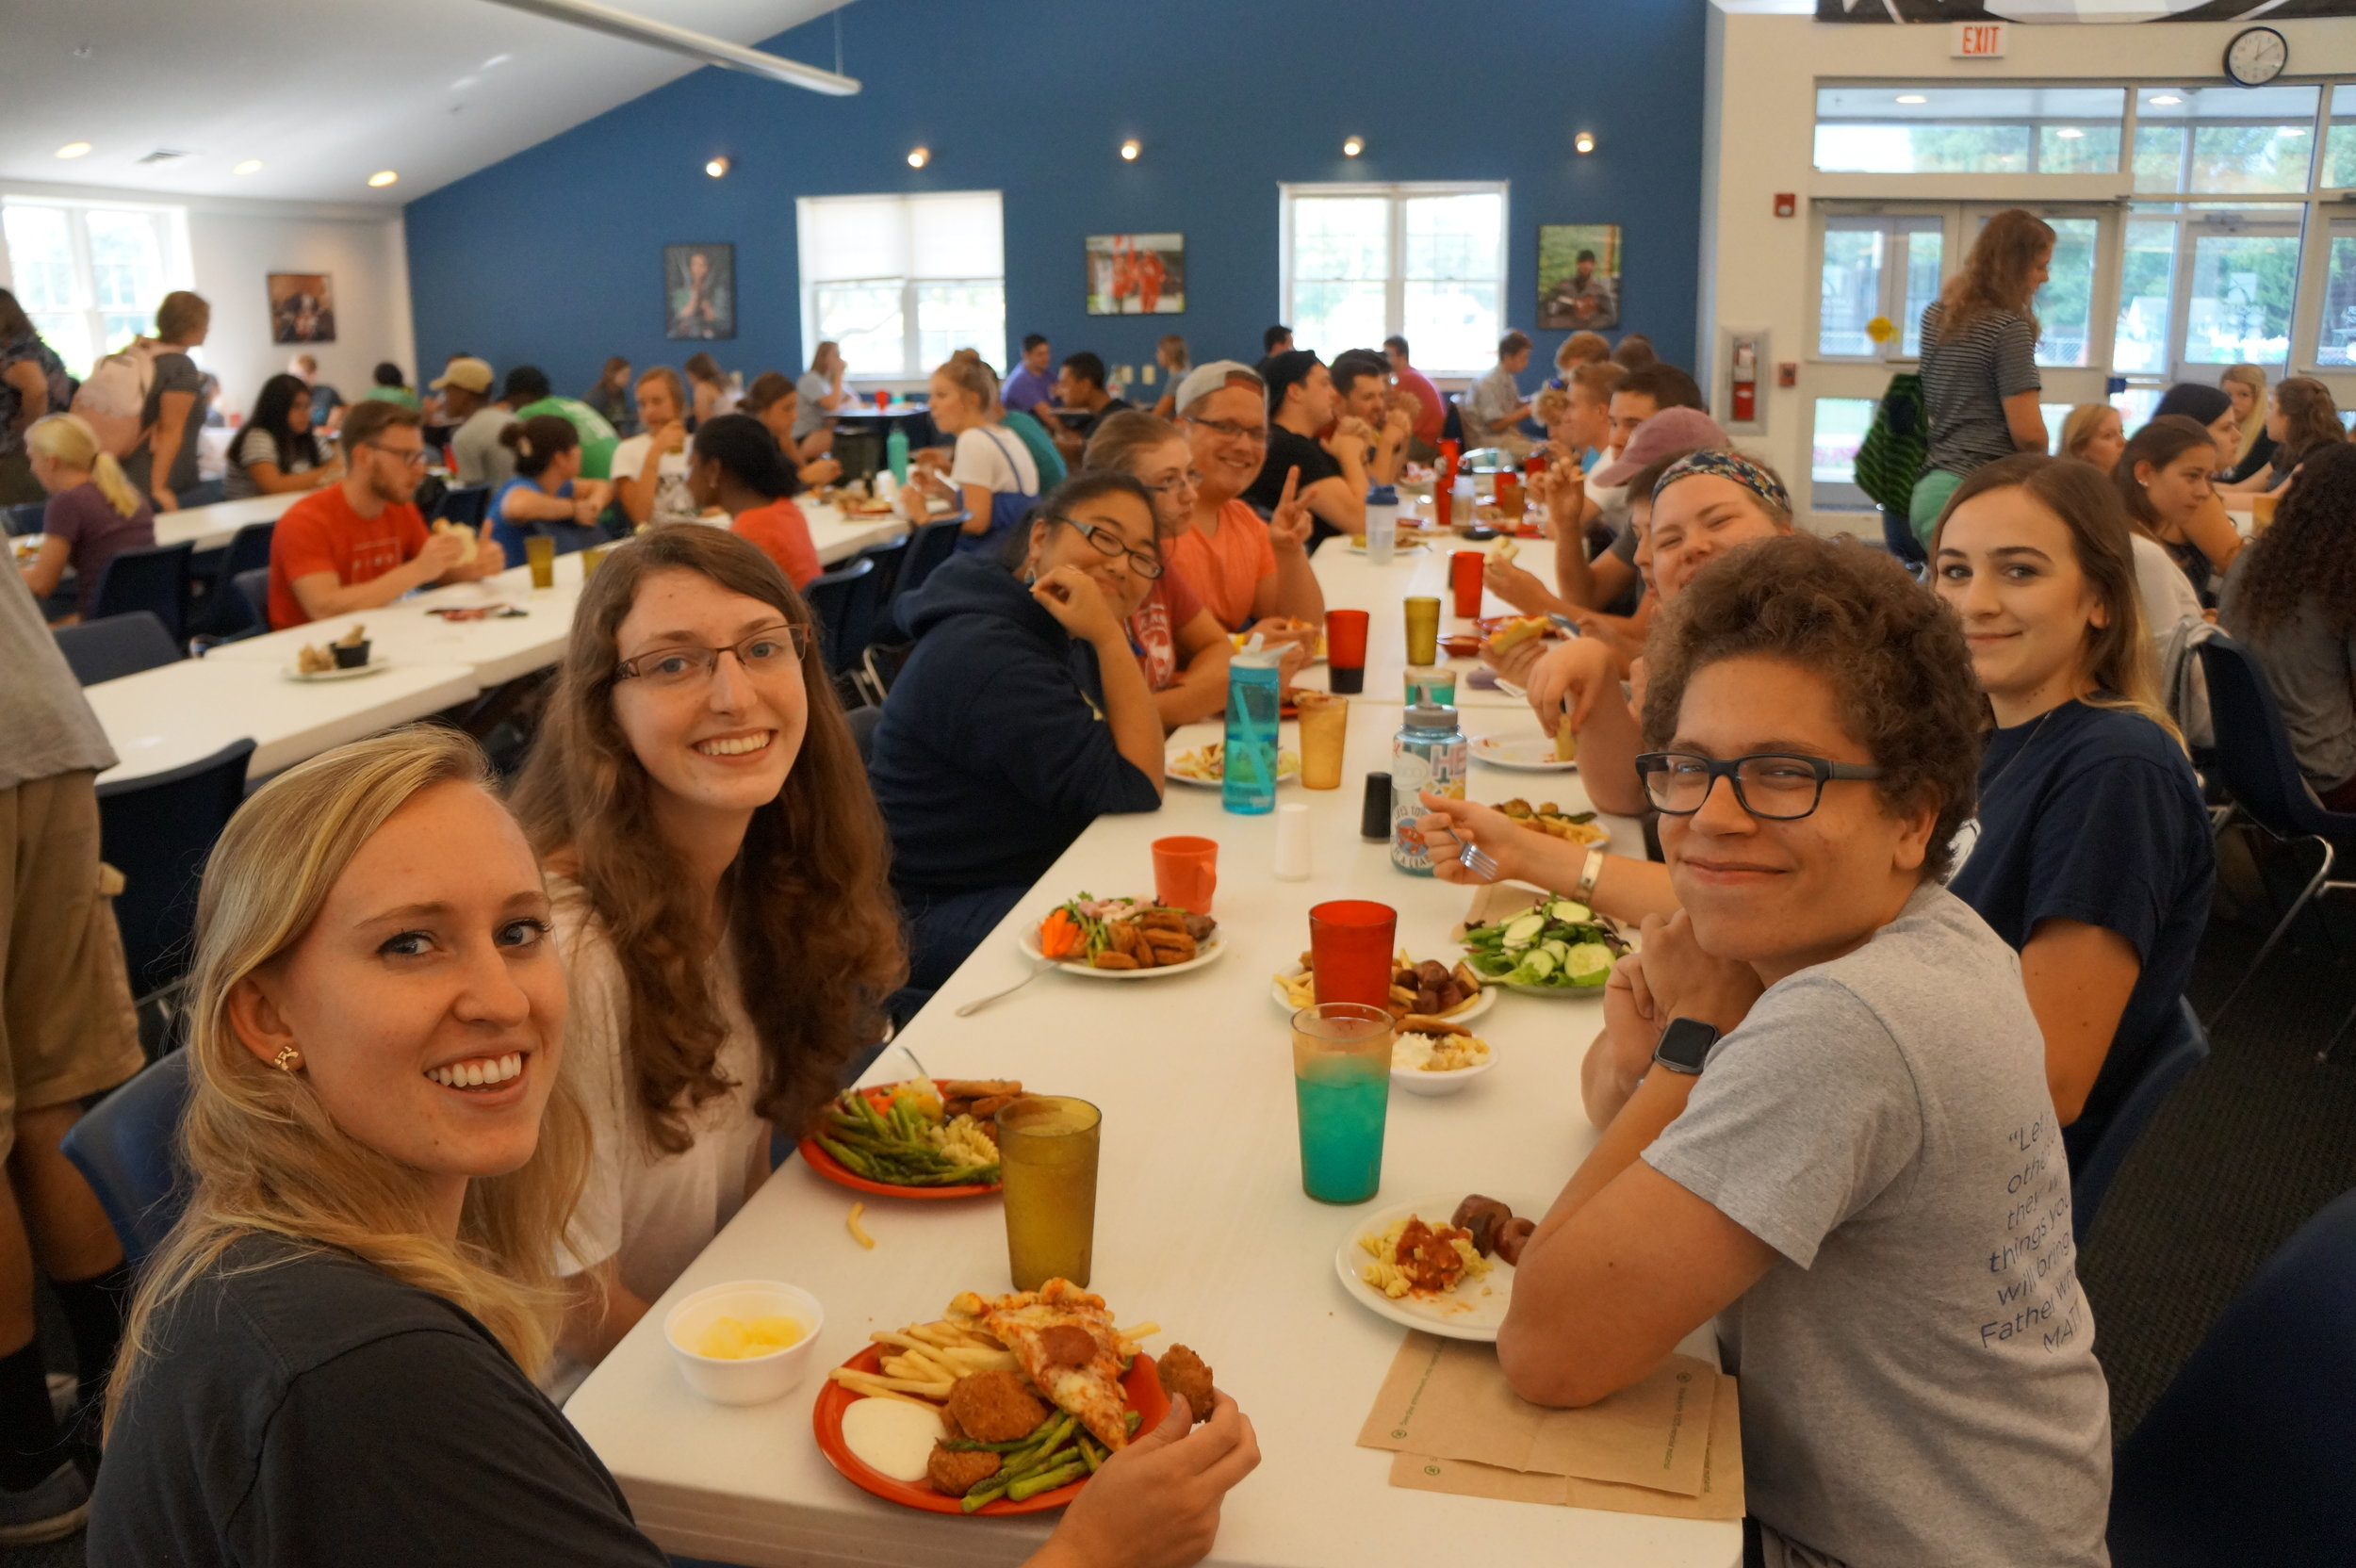 Lunch together in the ODC!